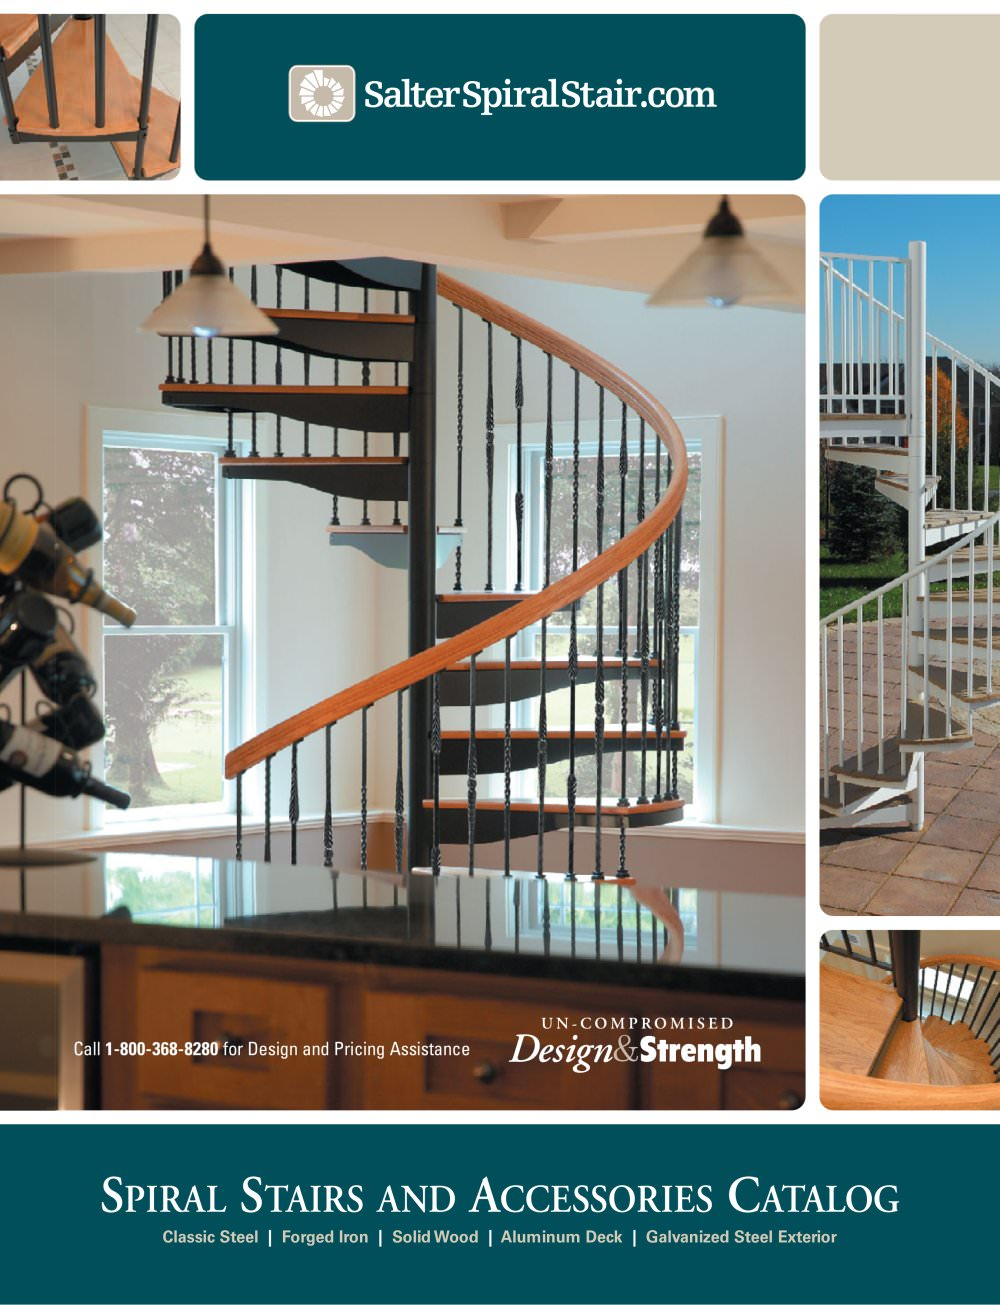 Spiral Stairs And Accessories Catalog   1 / 32 Pages